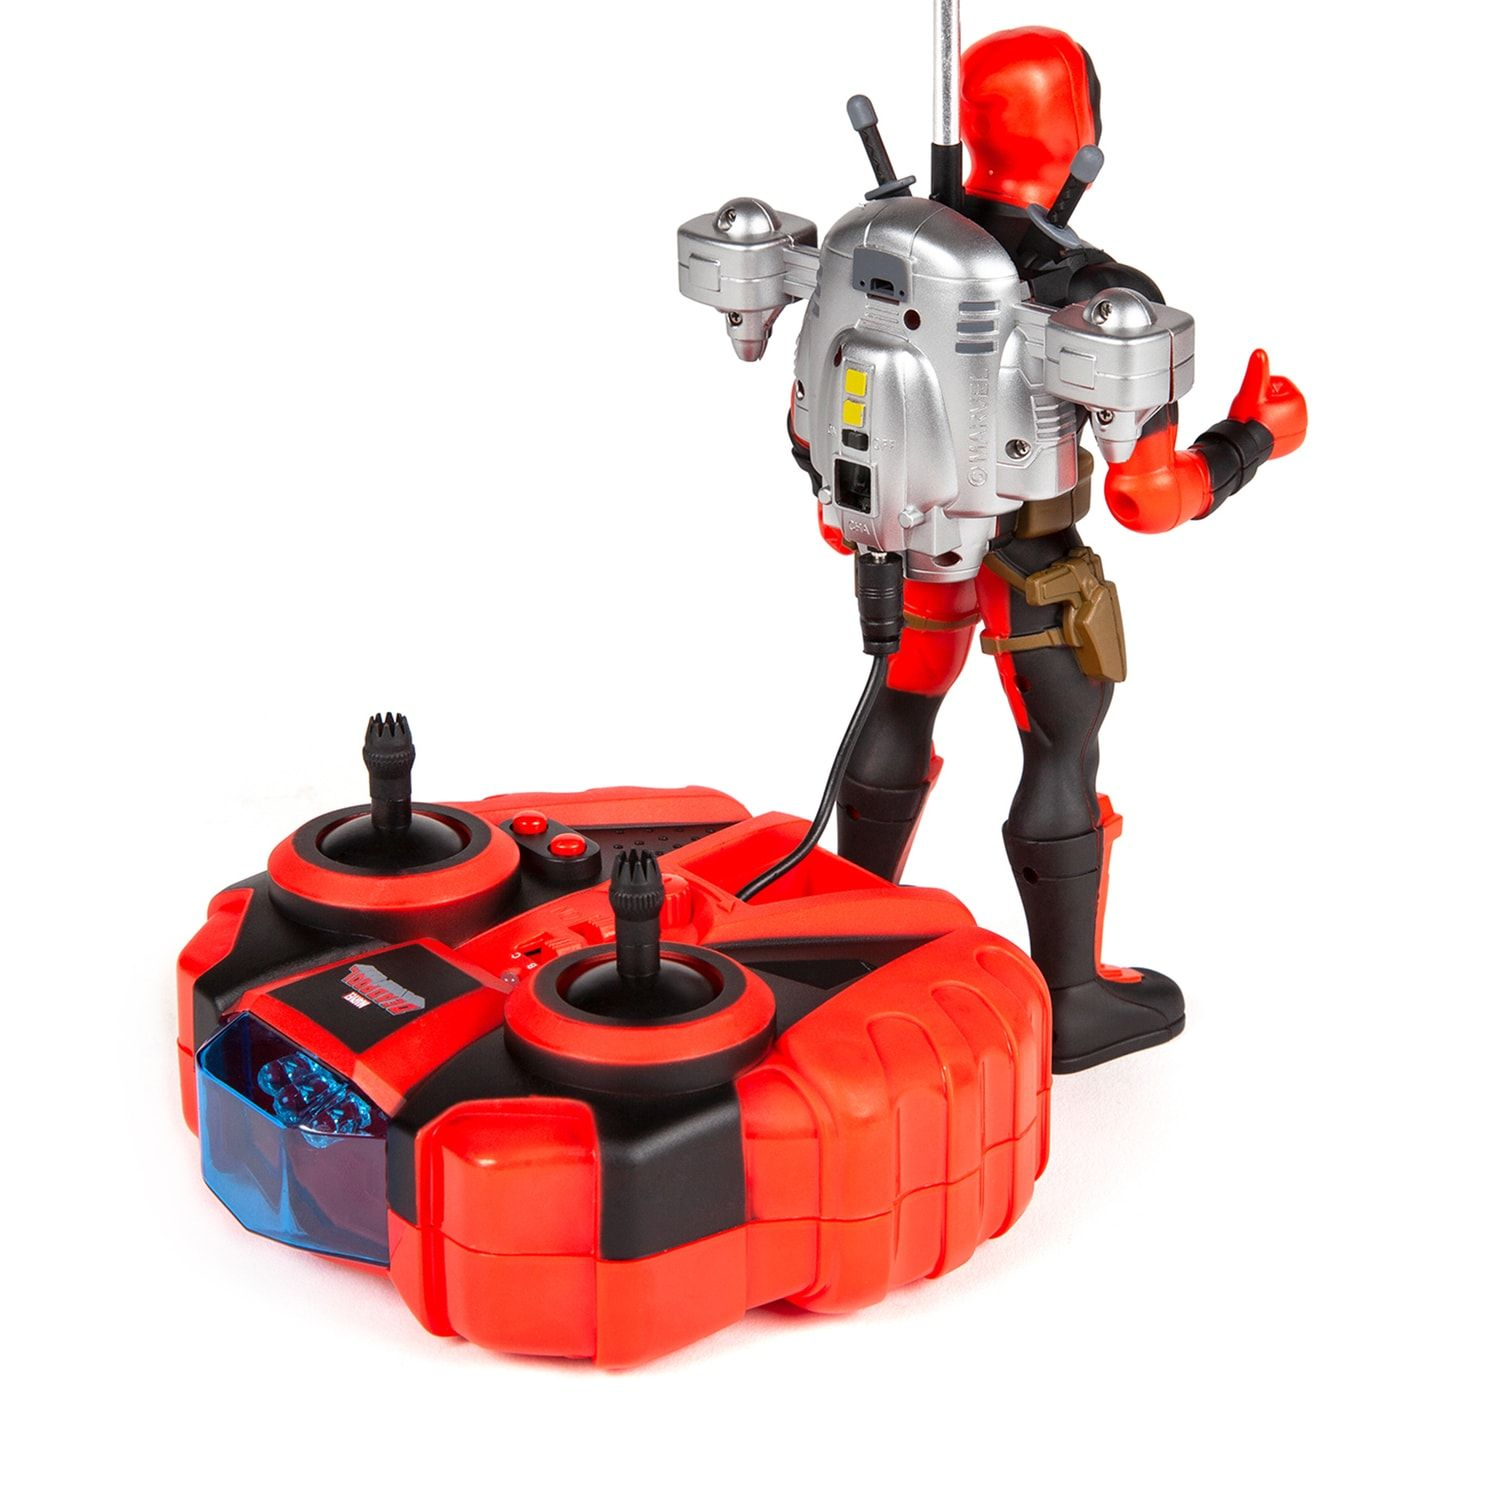 World Tech Toys Deadpool Jetpack Flying Figure Helicopter #techtoys